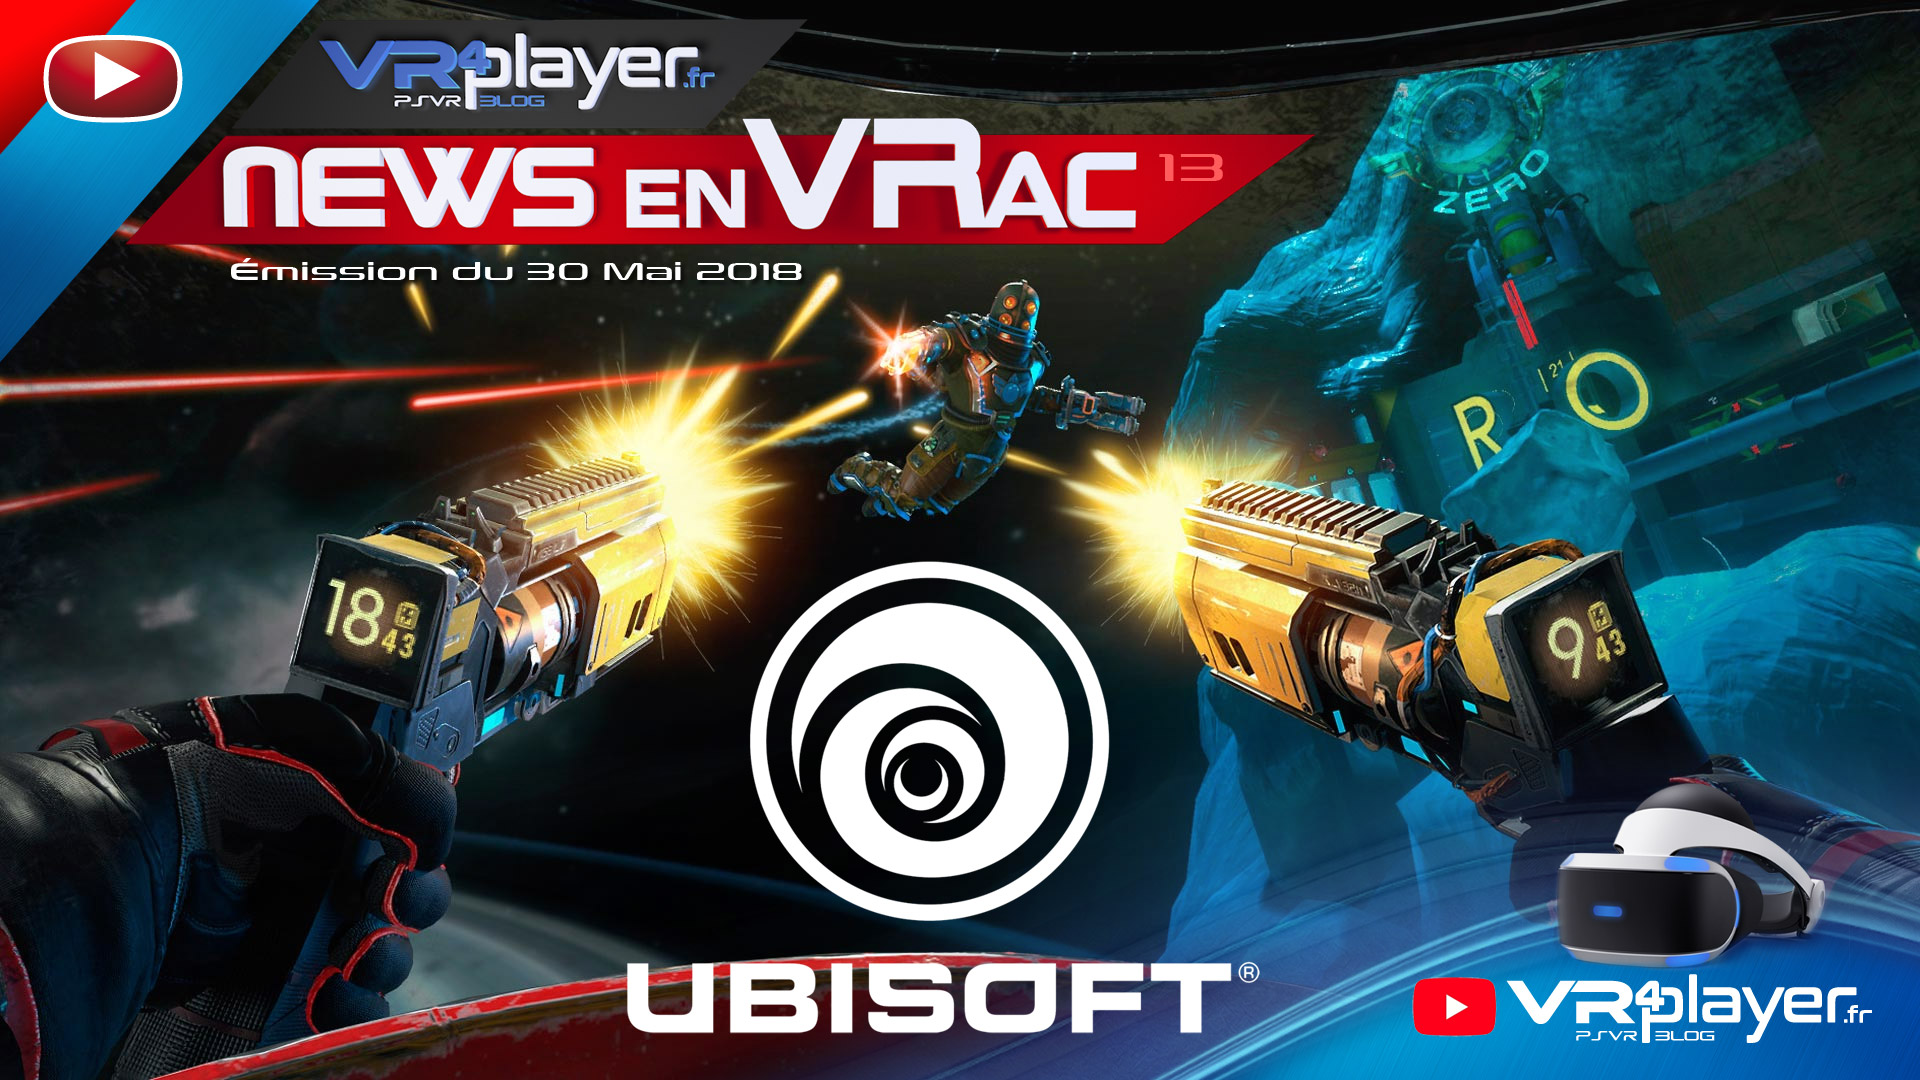 Les news en VRac, PlayStation VR, VR4player Émission 13